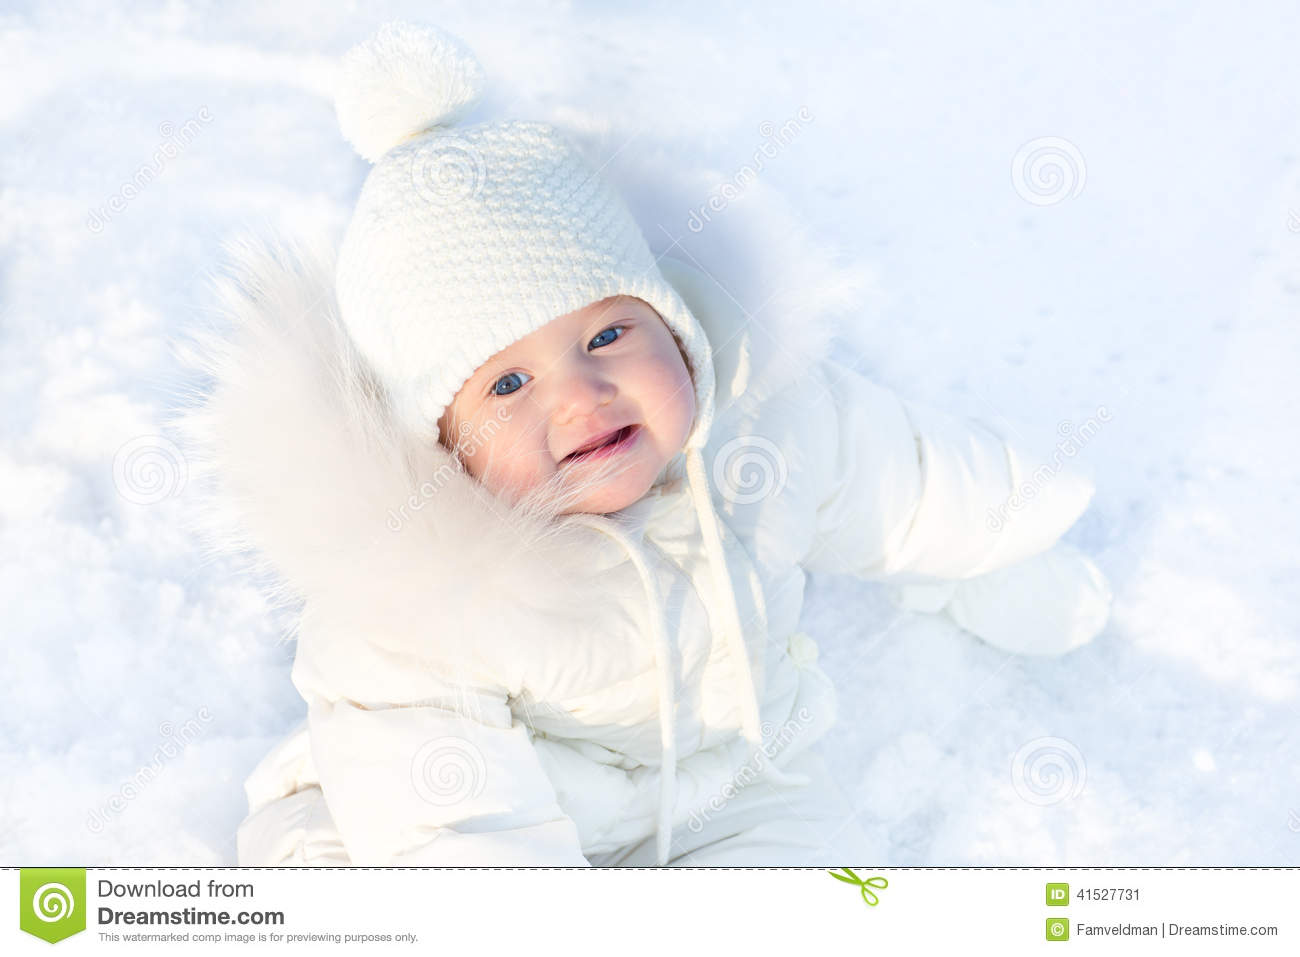 Cute Pictures Of Snow Impremedia Net